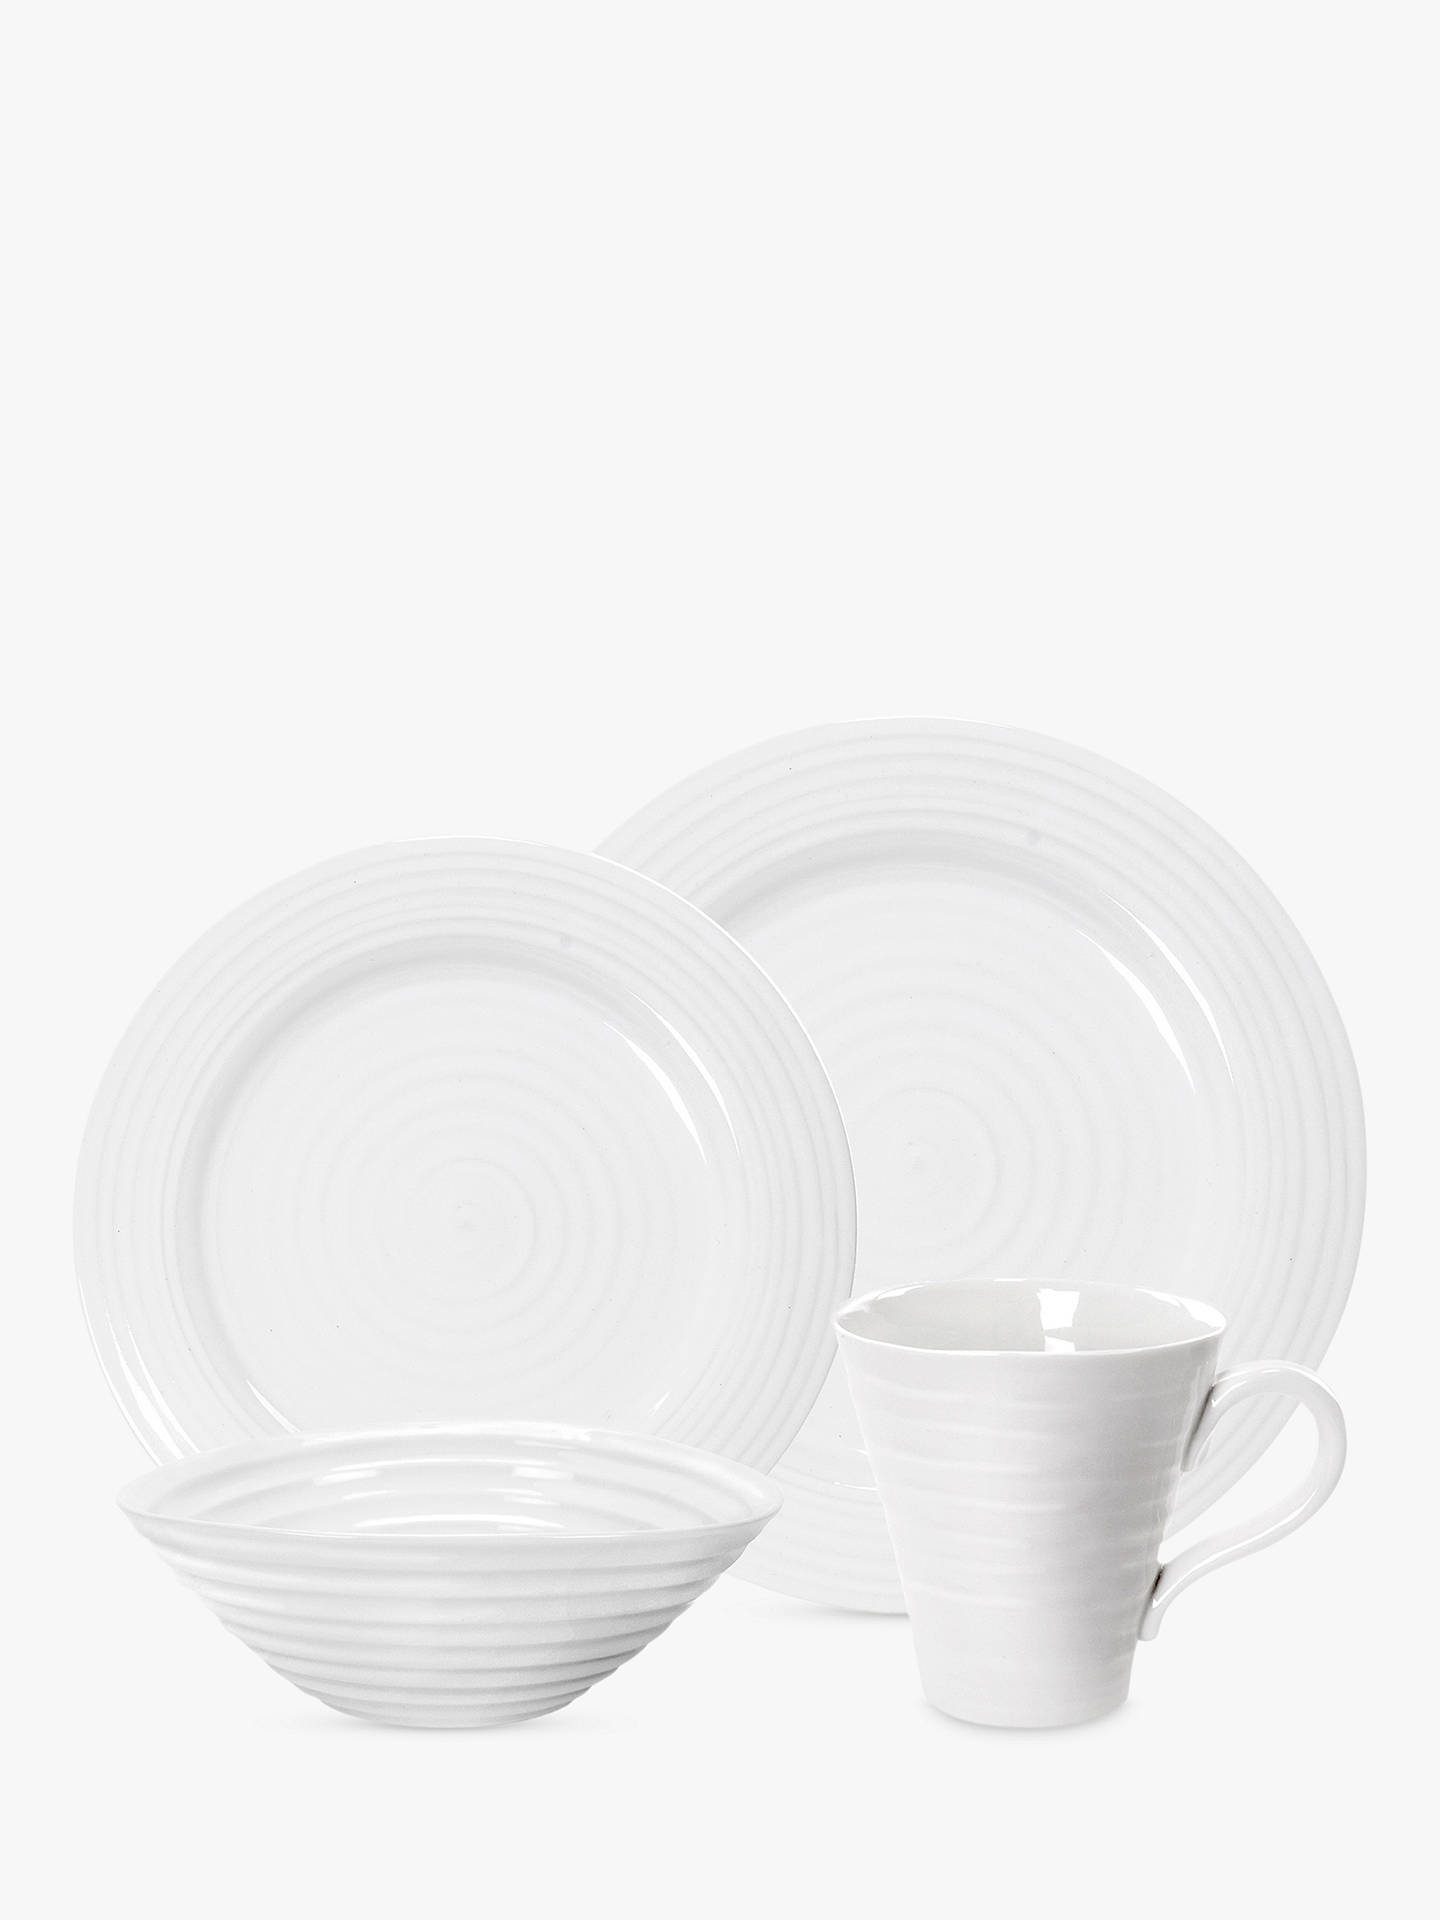 Buy Sophie Conran for Portmeirion Dinnerware Set, White, 4 Pieces Online at johnlewis.com